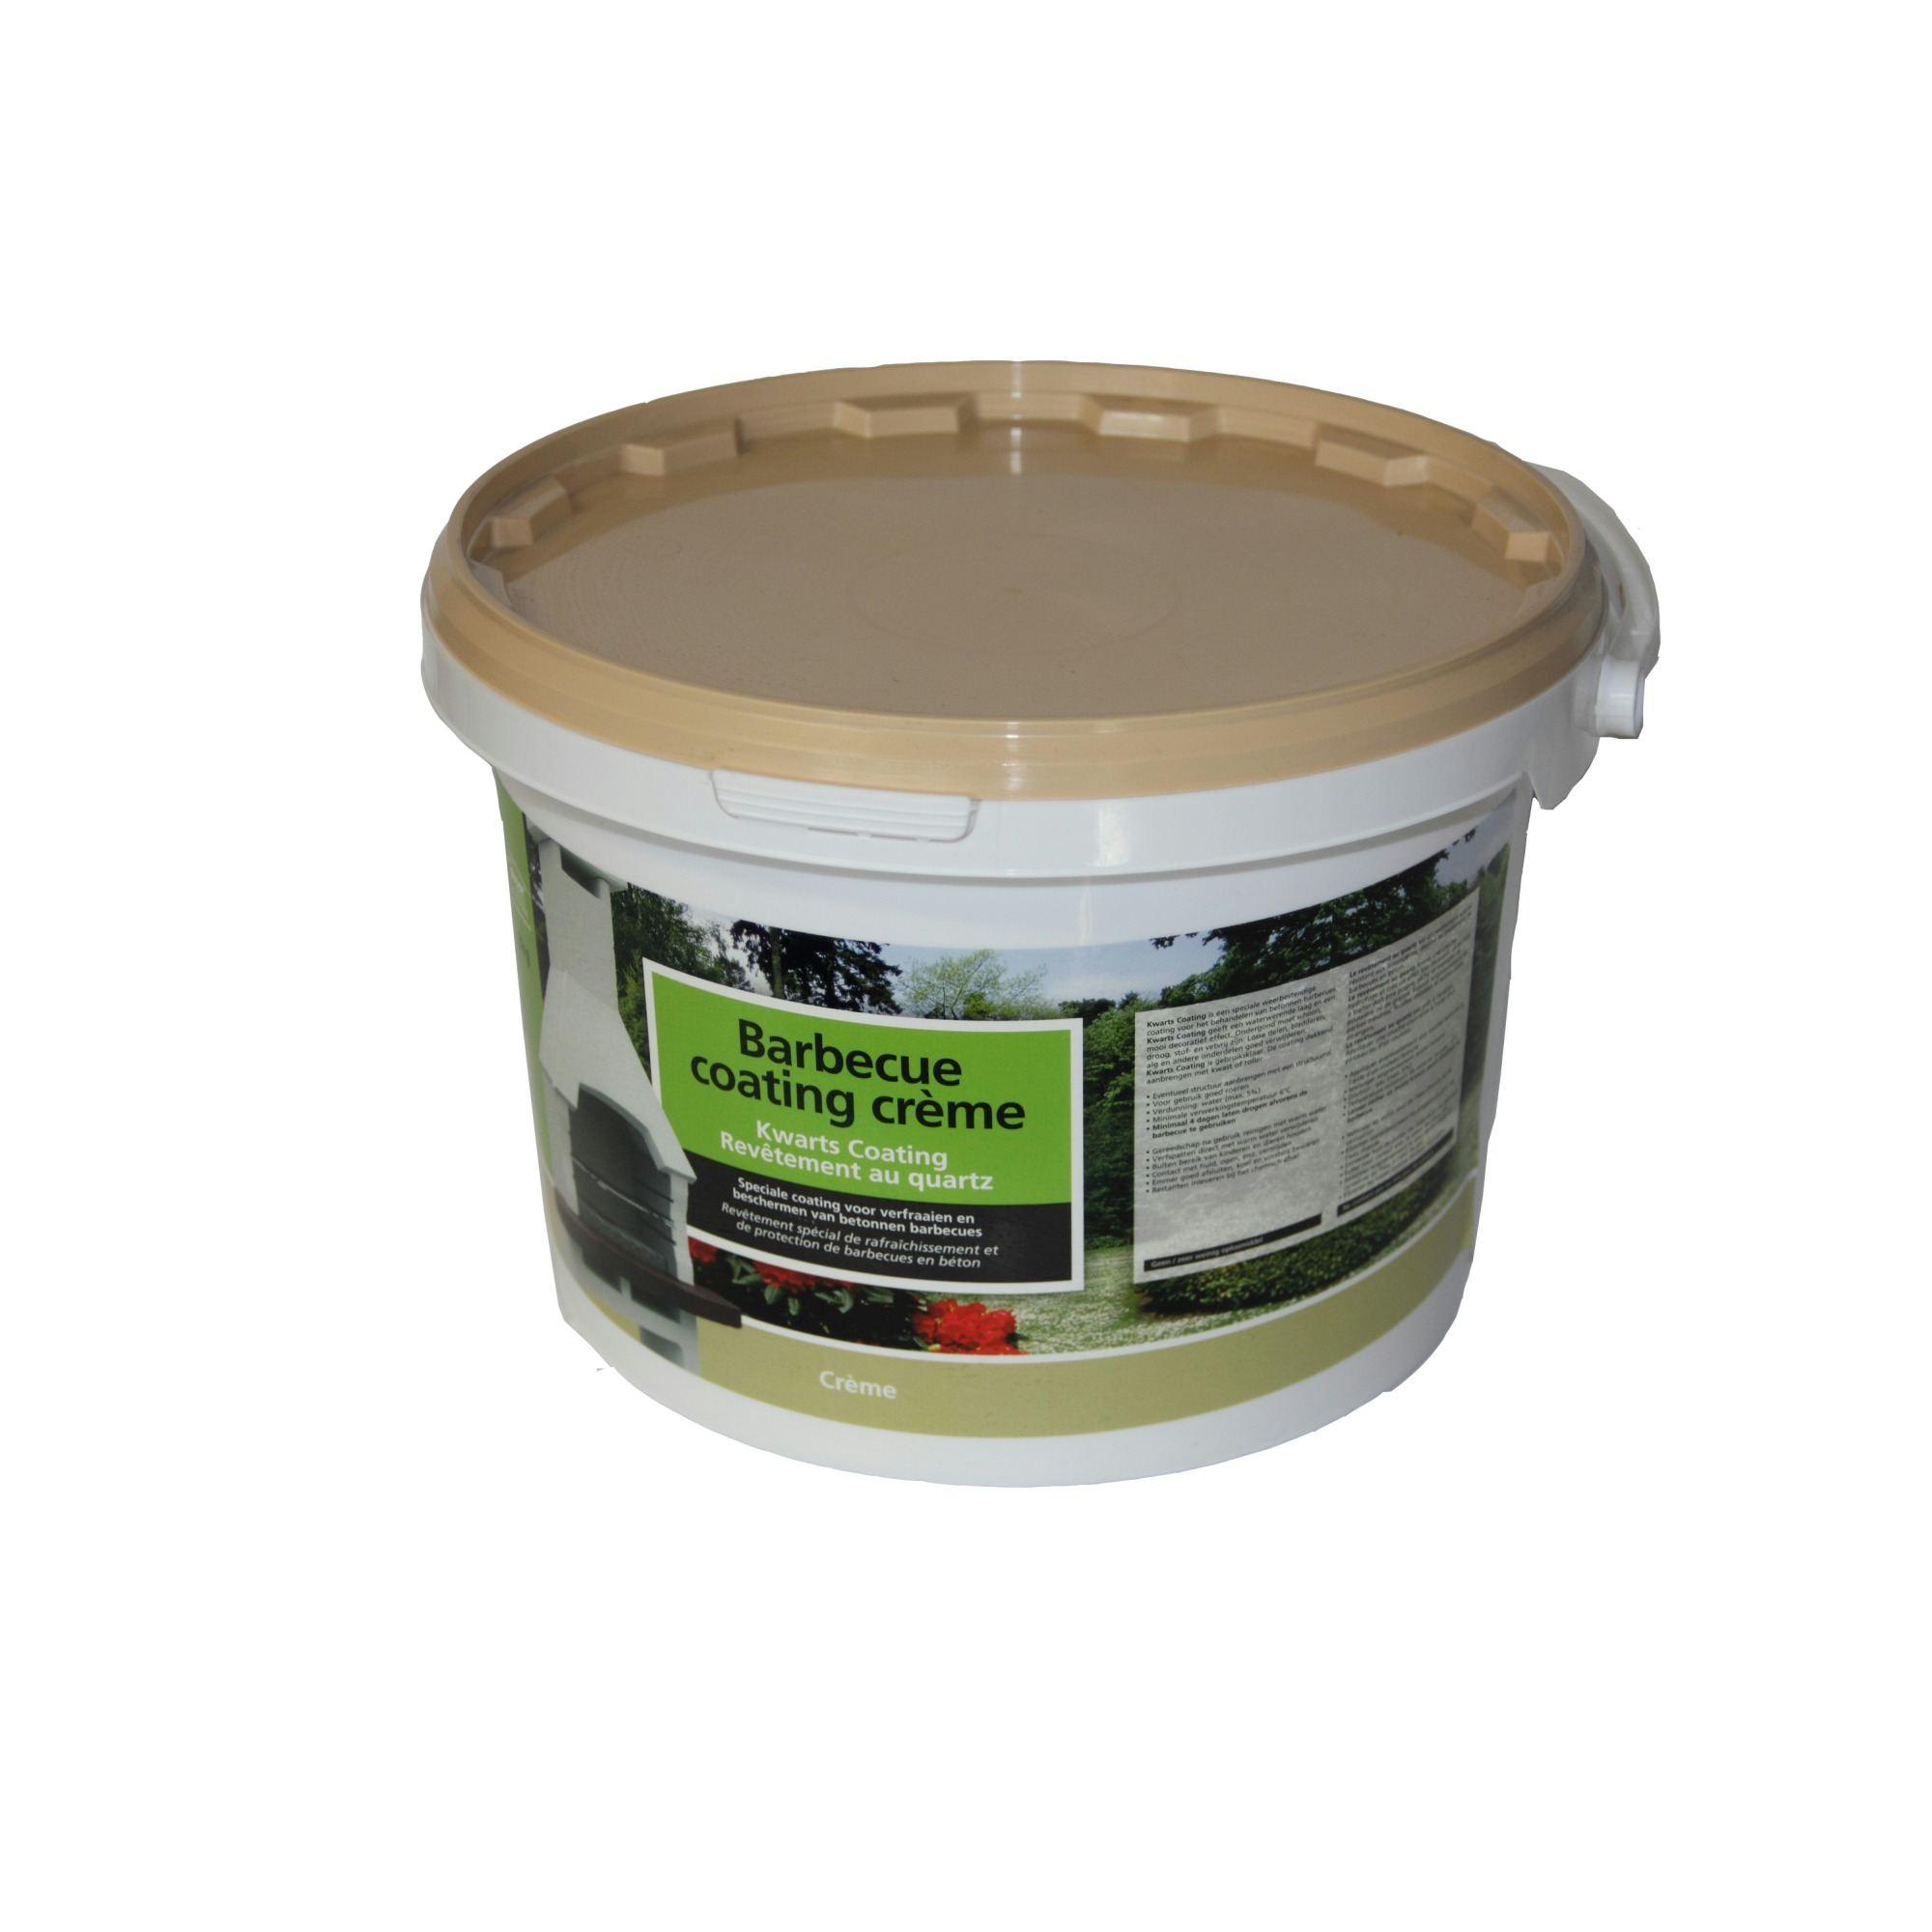 Barbecuecoating creme 8 kg